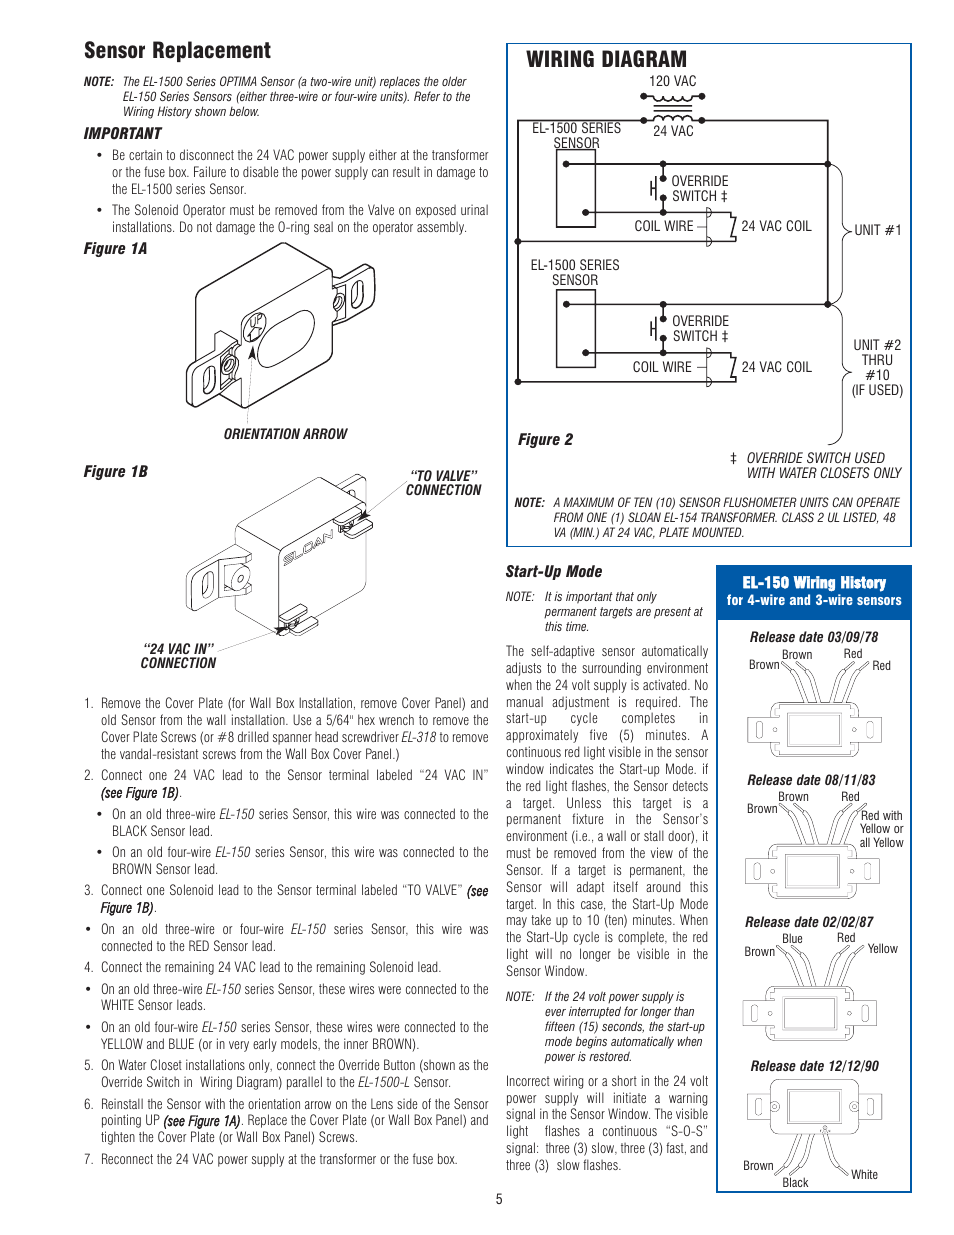 El Wiring Diagram And Schematics Acura 1 6 Sensor Replacement Optima Company 1500 User Manual Page 5